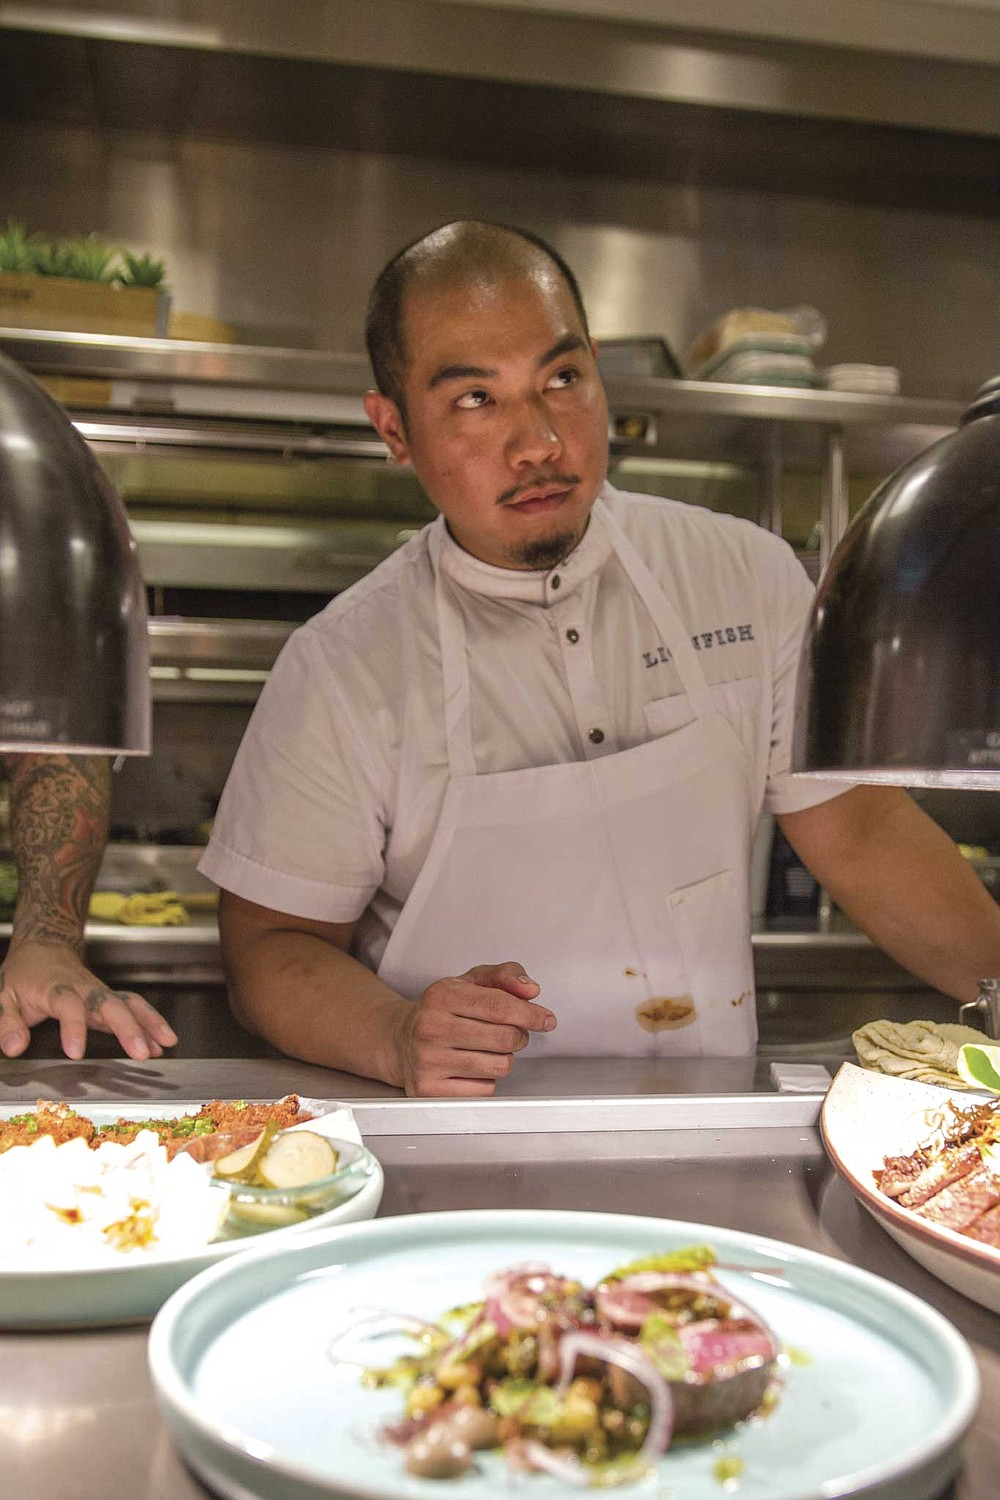 Ruiz and his chef de cuisine, Aaron Panganiban (pictured), have been going over recipes with their team, stepping from one station to the next, cooking and plating a single dish at a time.